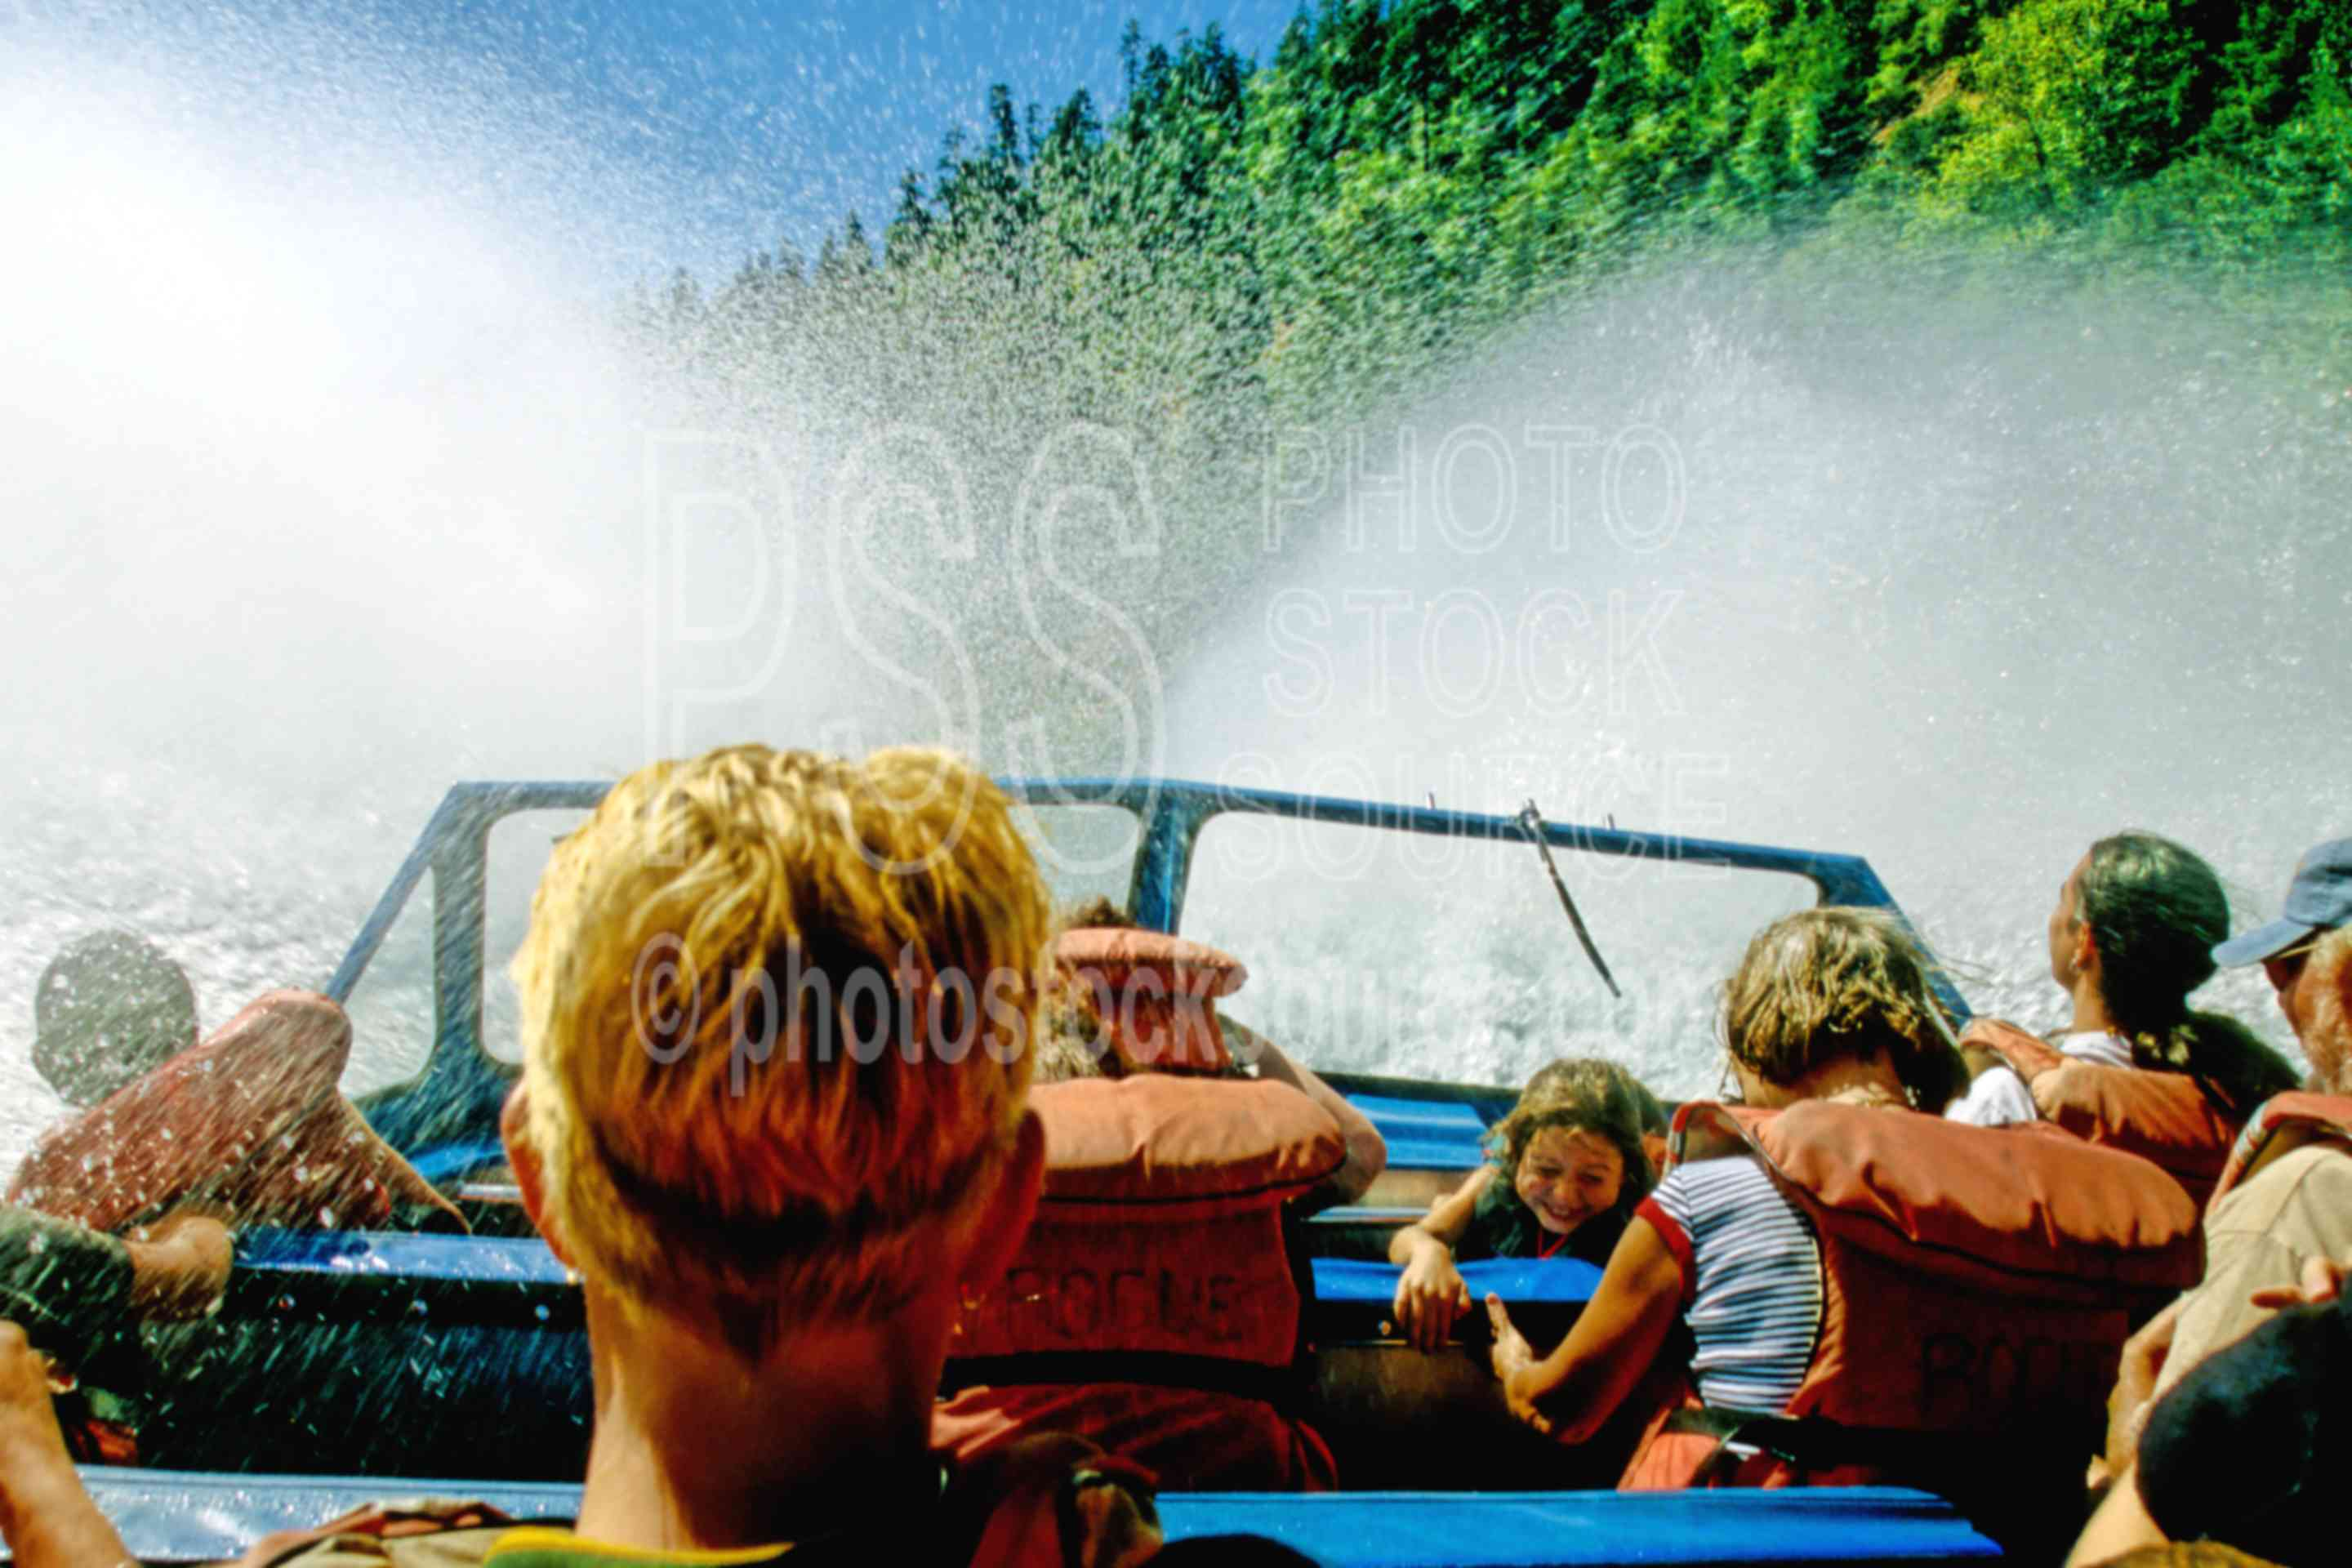 Rogue River Jet Boat,jet boat,rapids,river,wets,people,usas,lakes rivers,boats